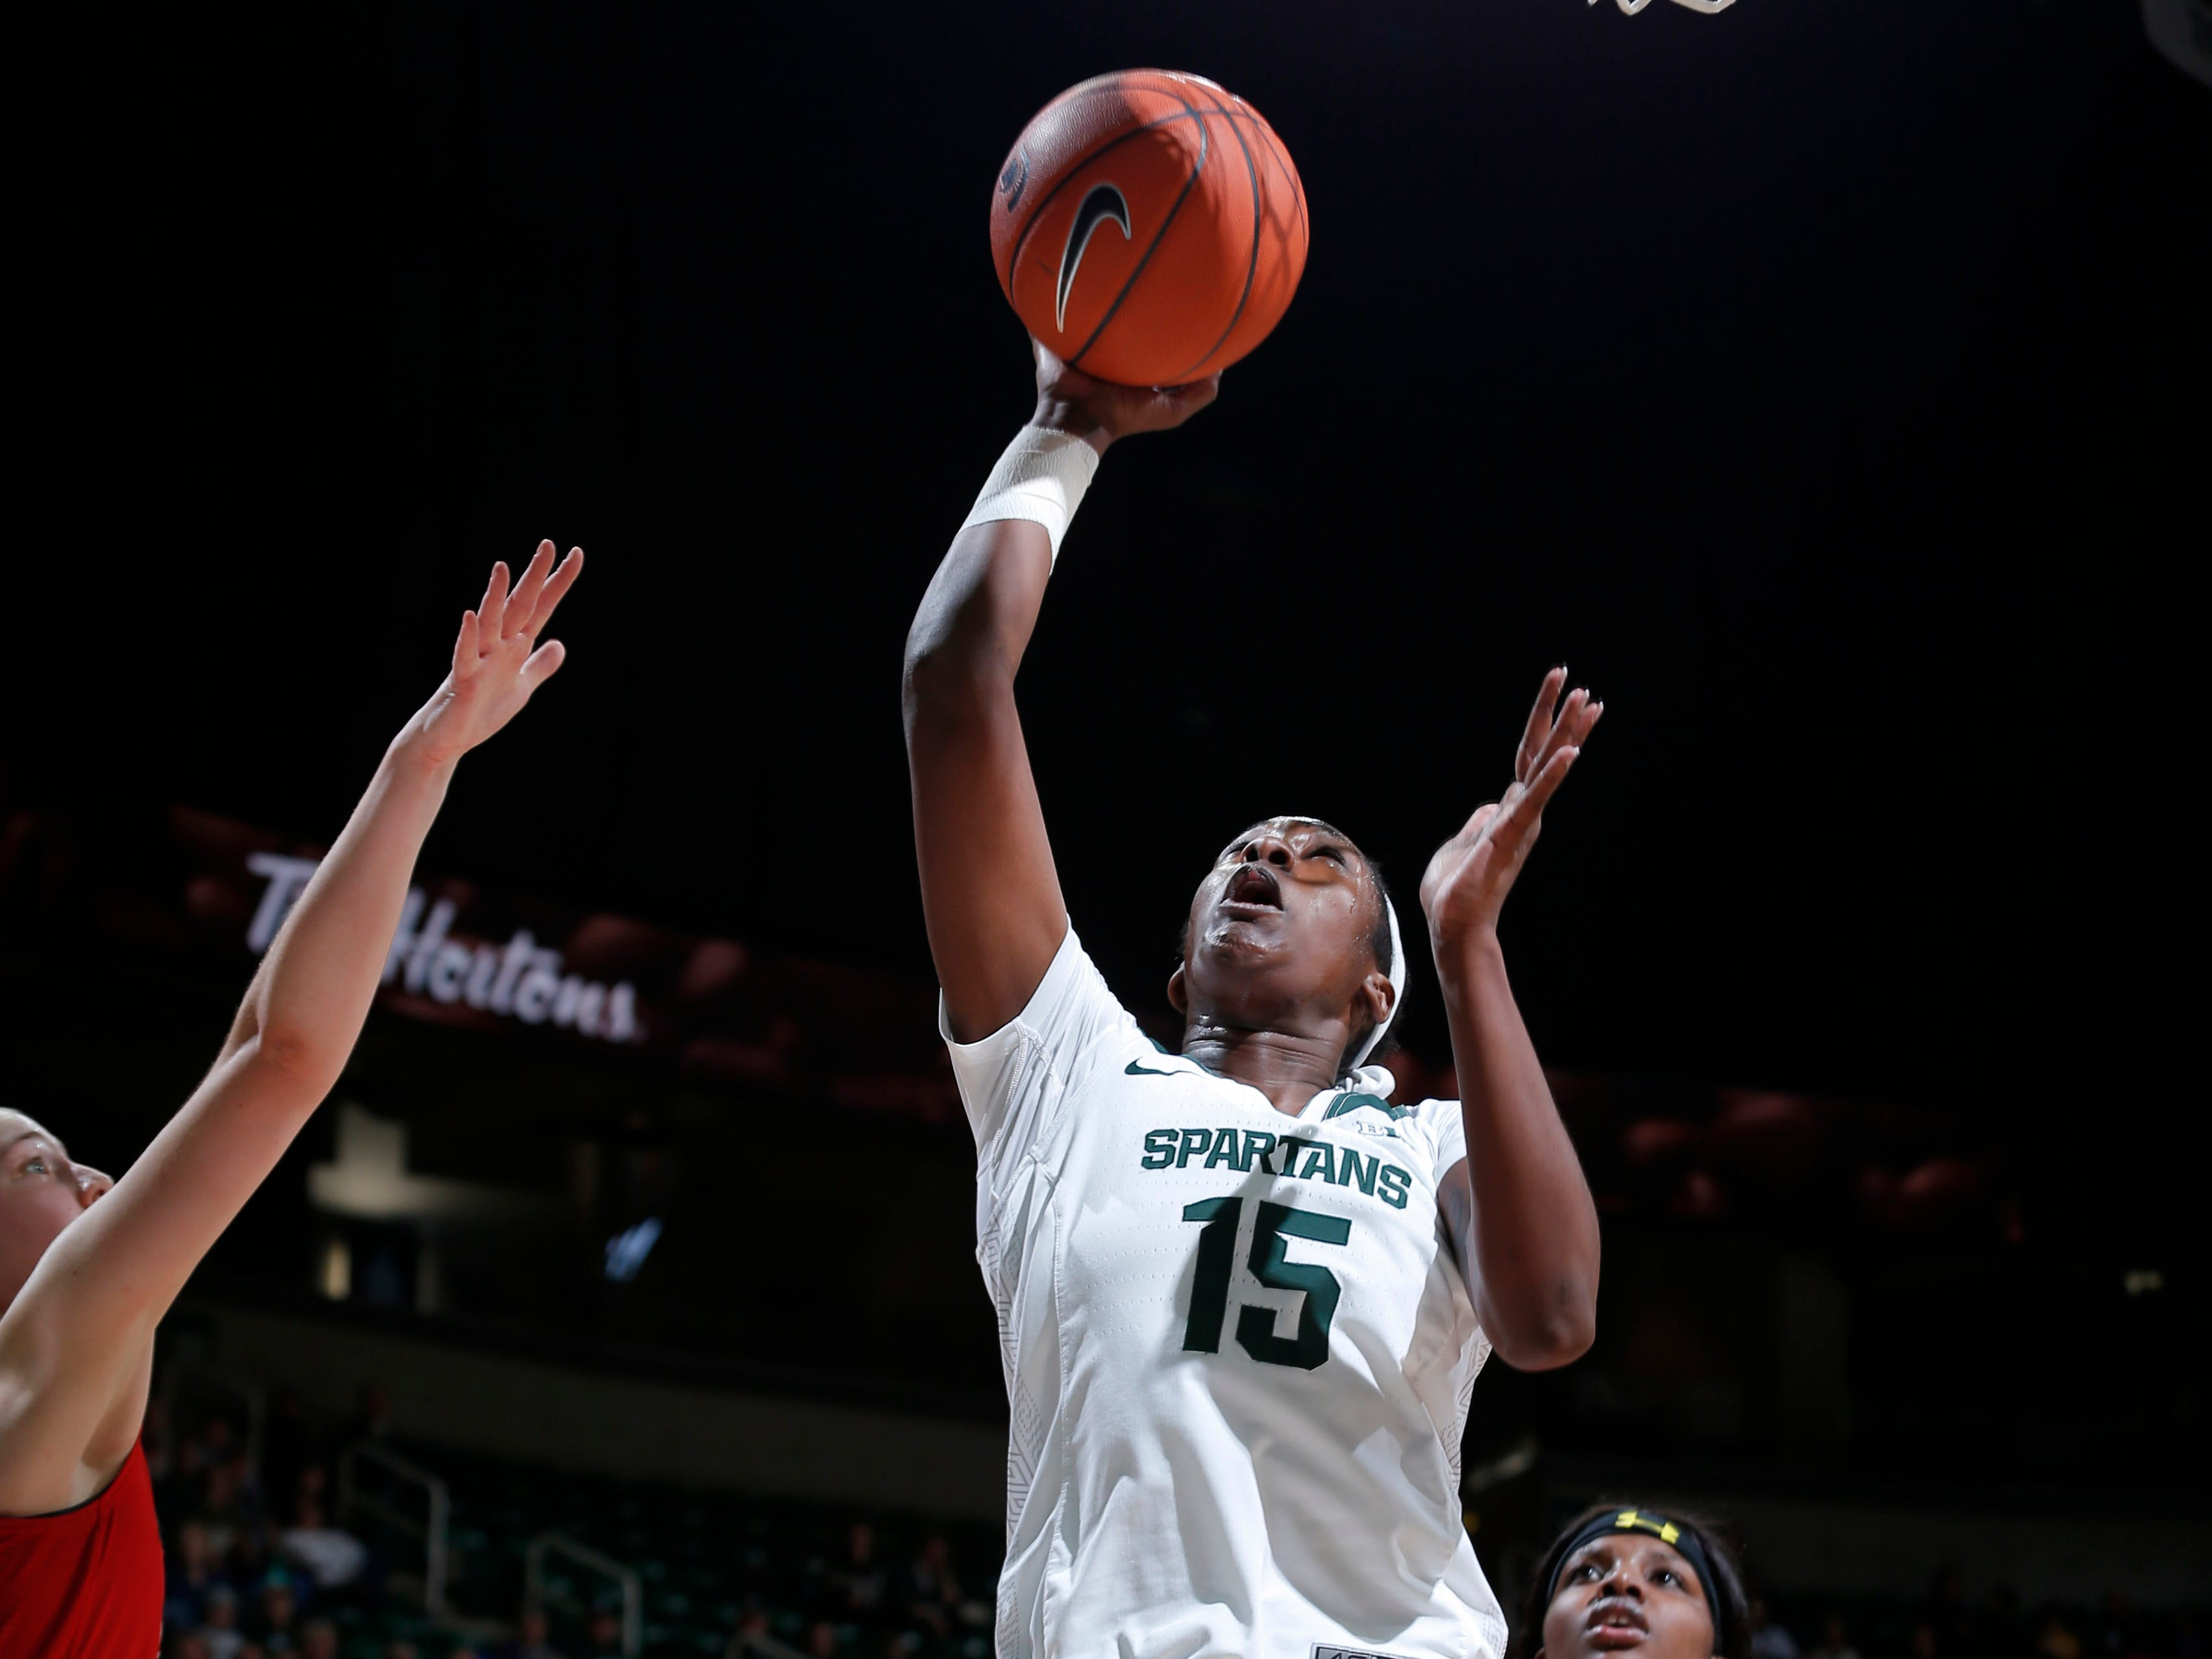 Michigan State's Victoria Gaines shoots against Maryland, Thursday, Jan. 17, 2019, in East Lansing, Mich.